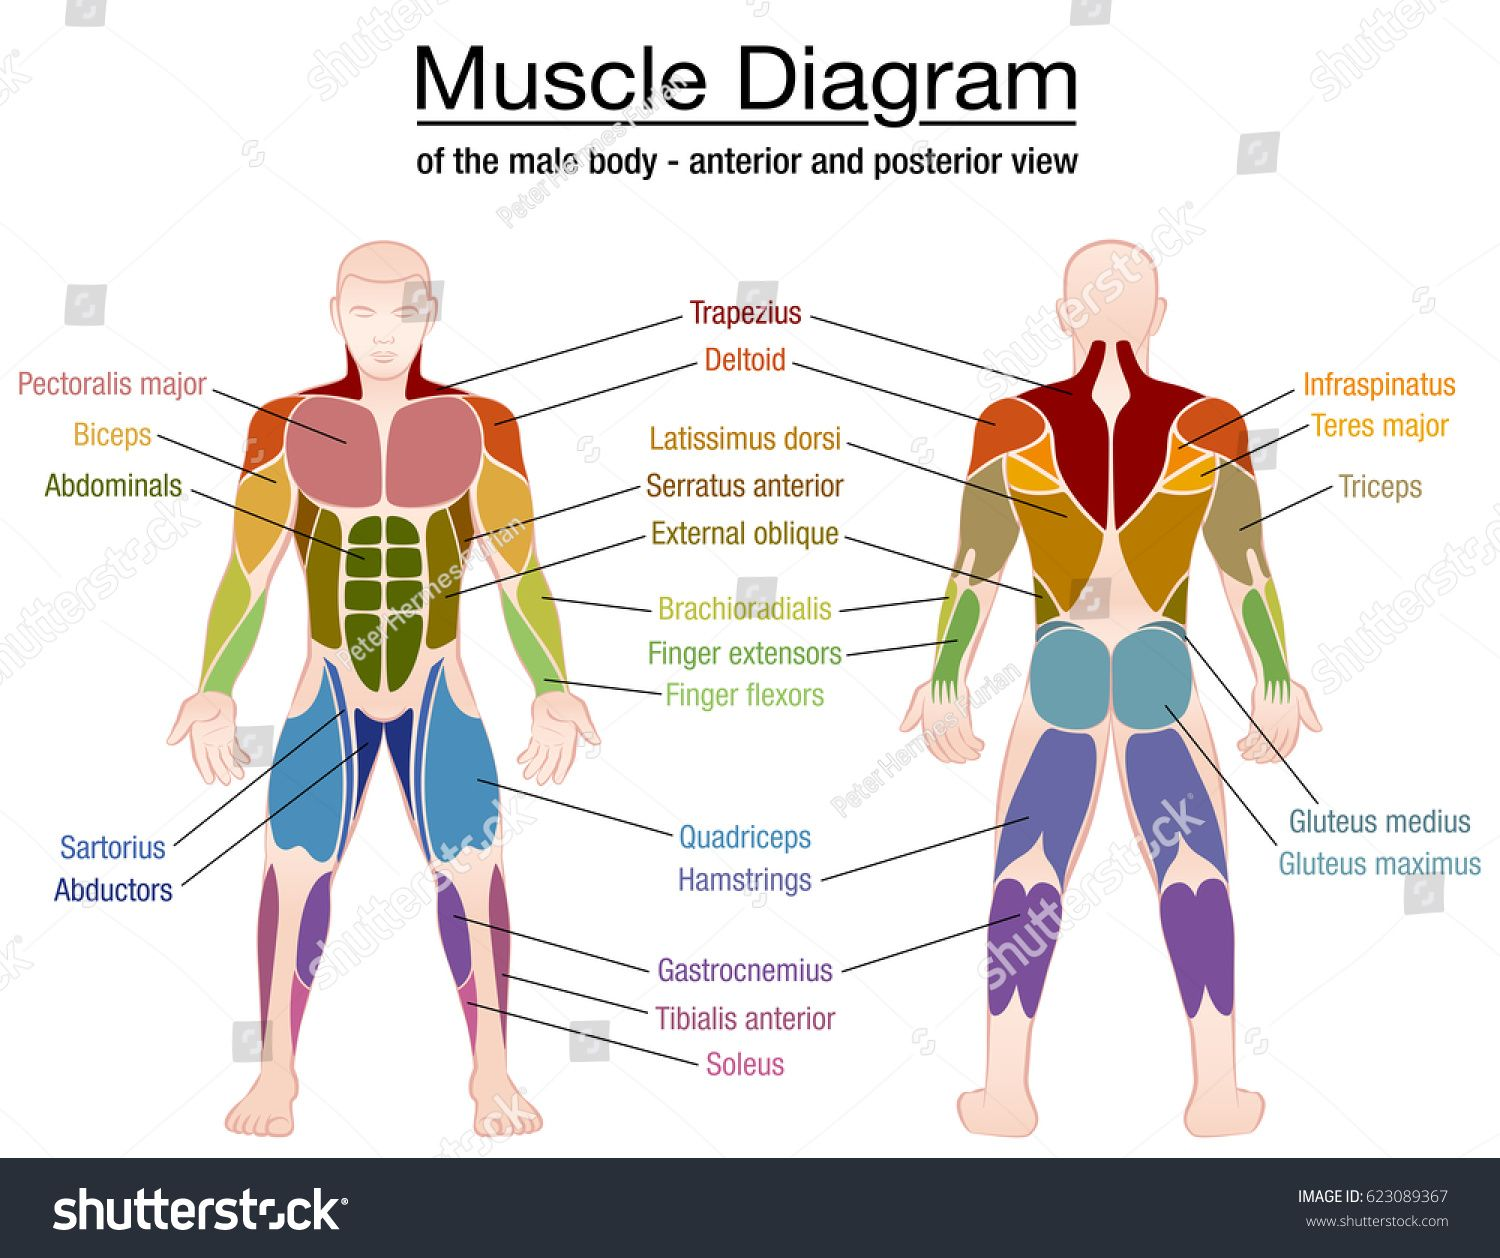 Muscle diagram - most important muscles of an athletic male body ...